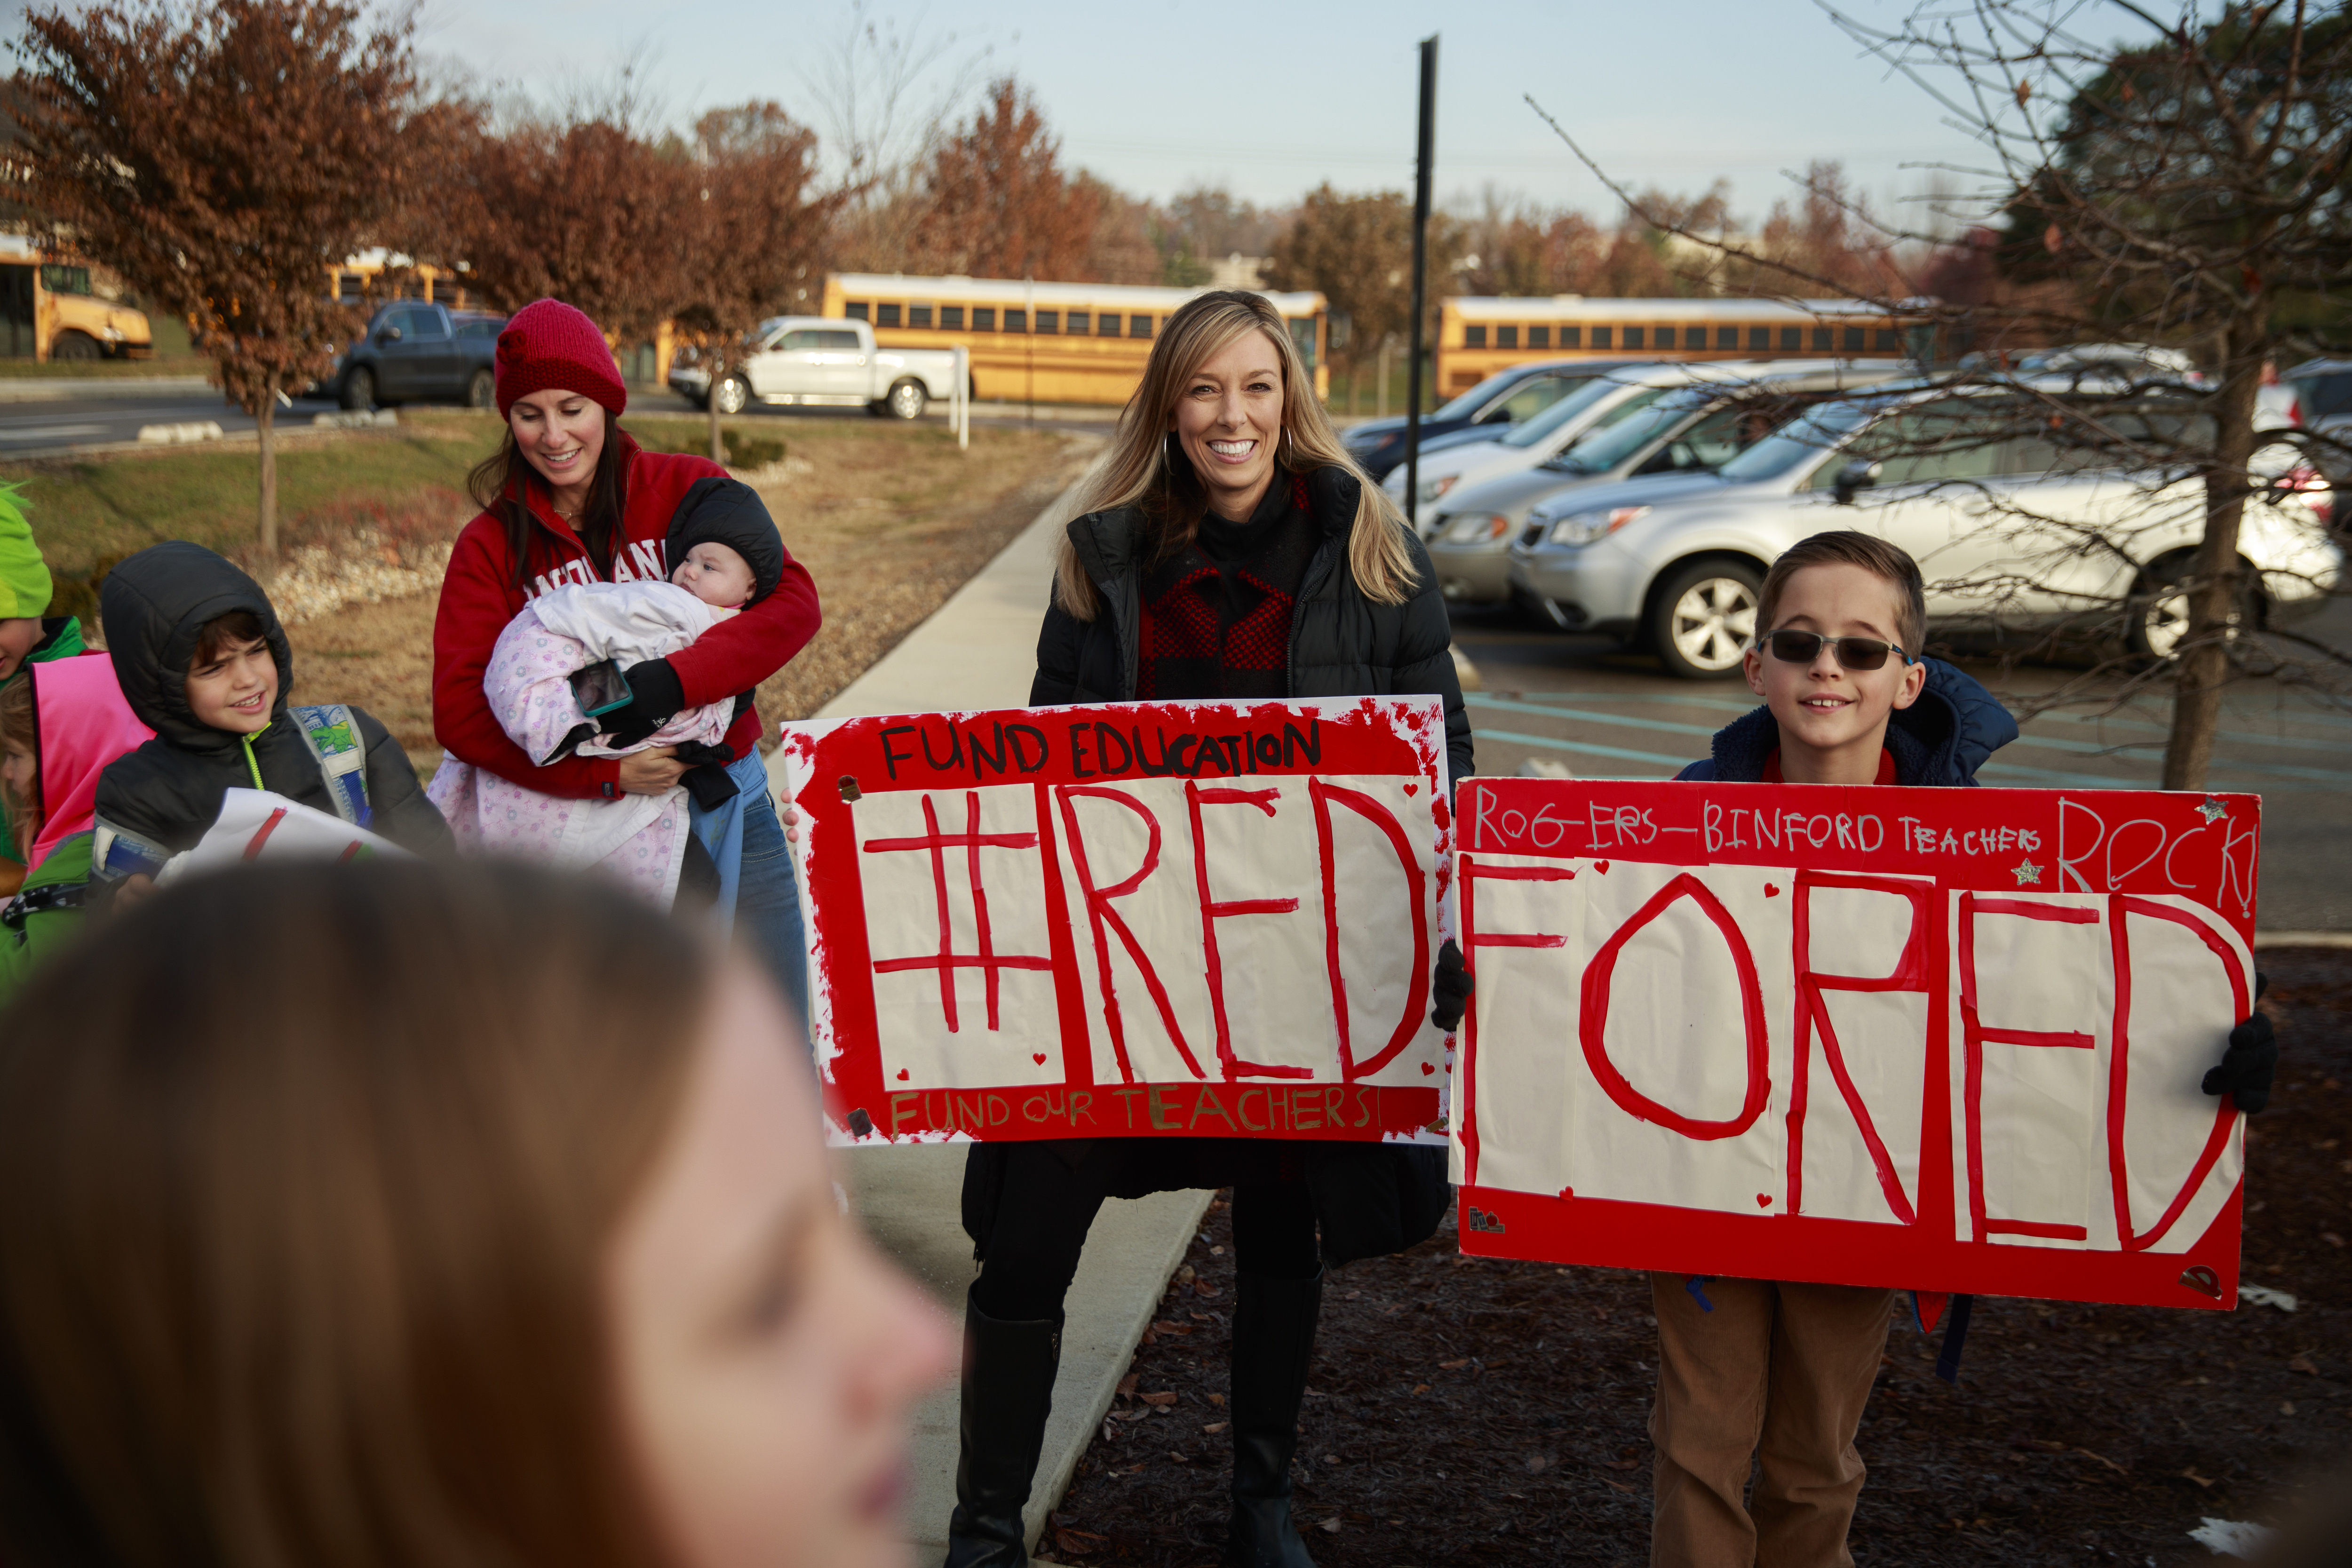 Teacher supporters demonstrate with signs during a Red for Ed protest.